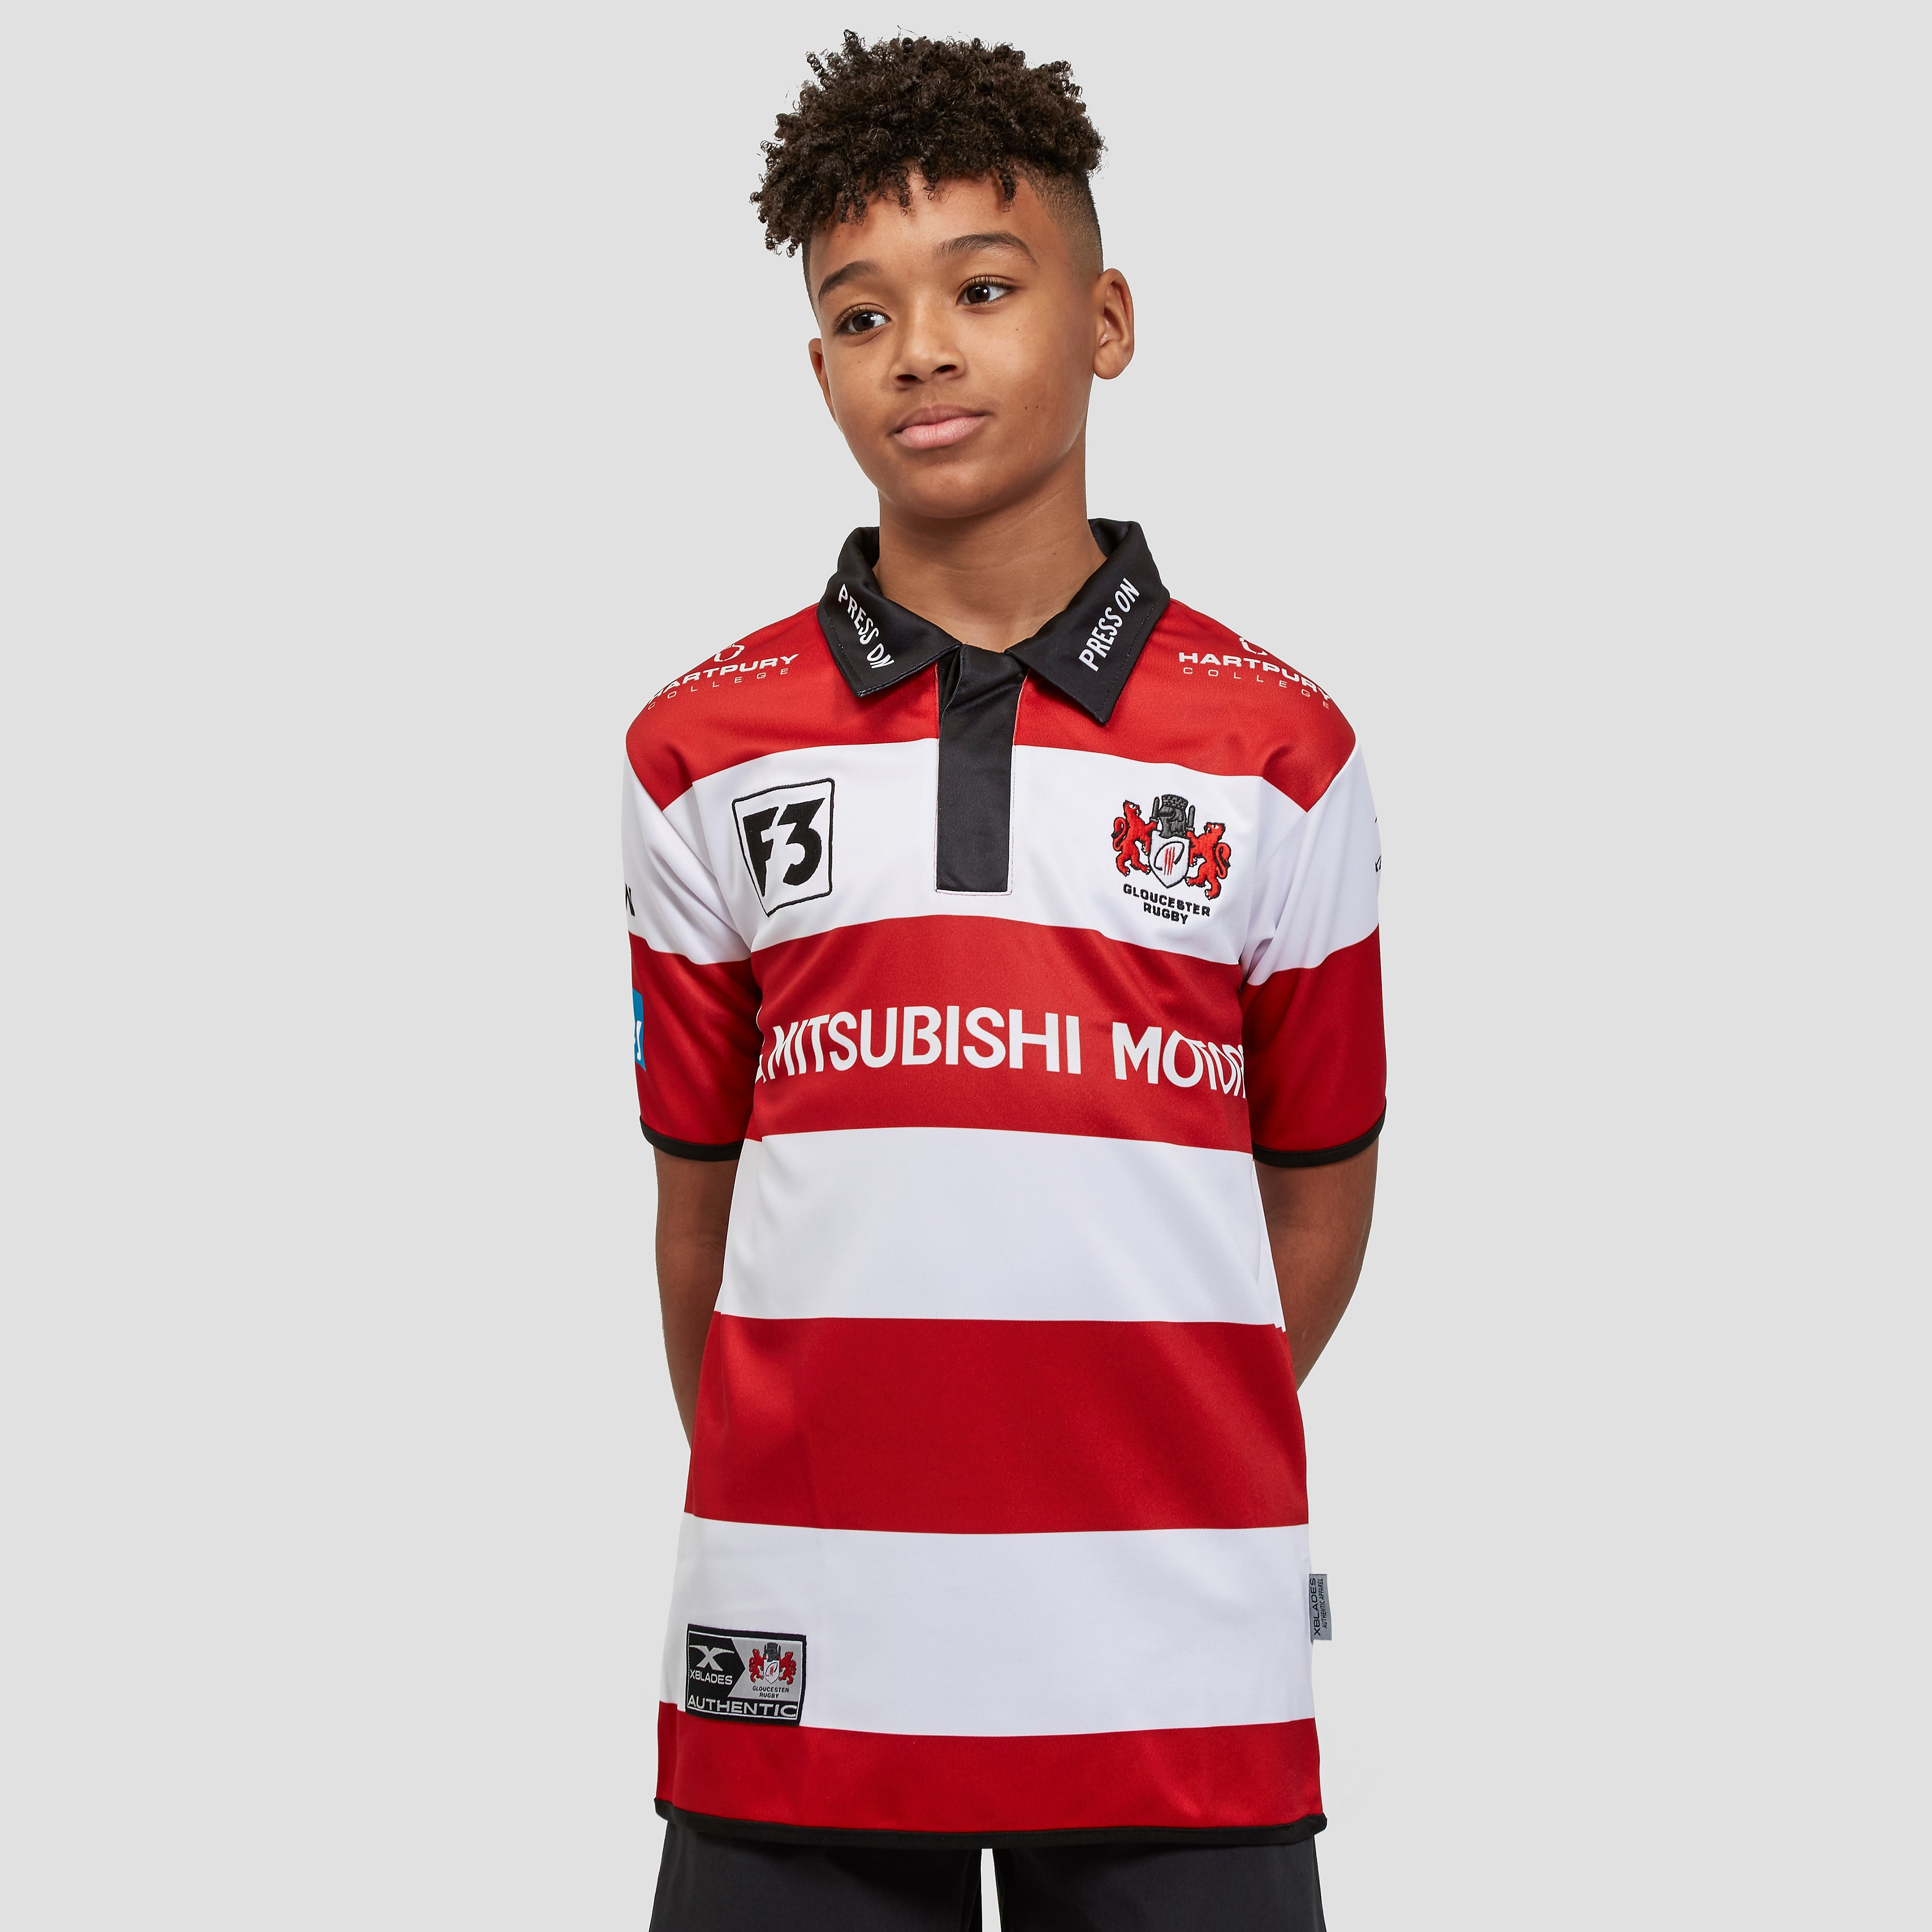 X Blades Junior Gloucester 2017/18 Supporters Home Shirt